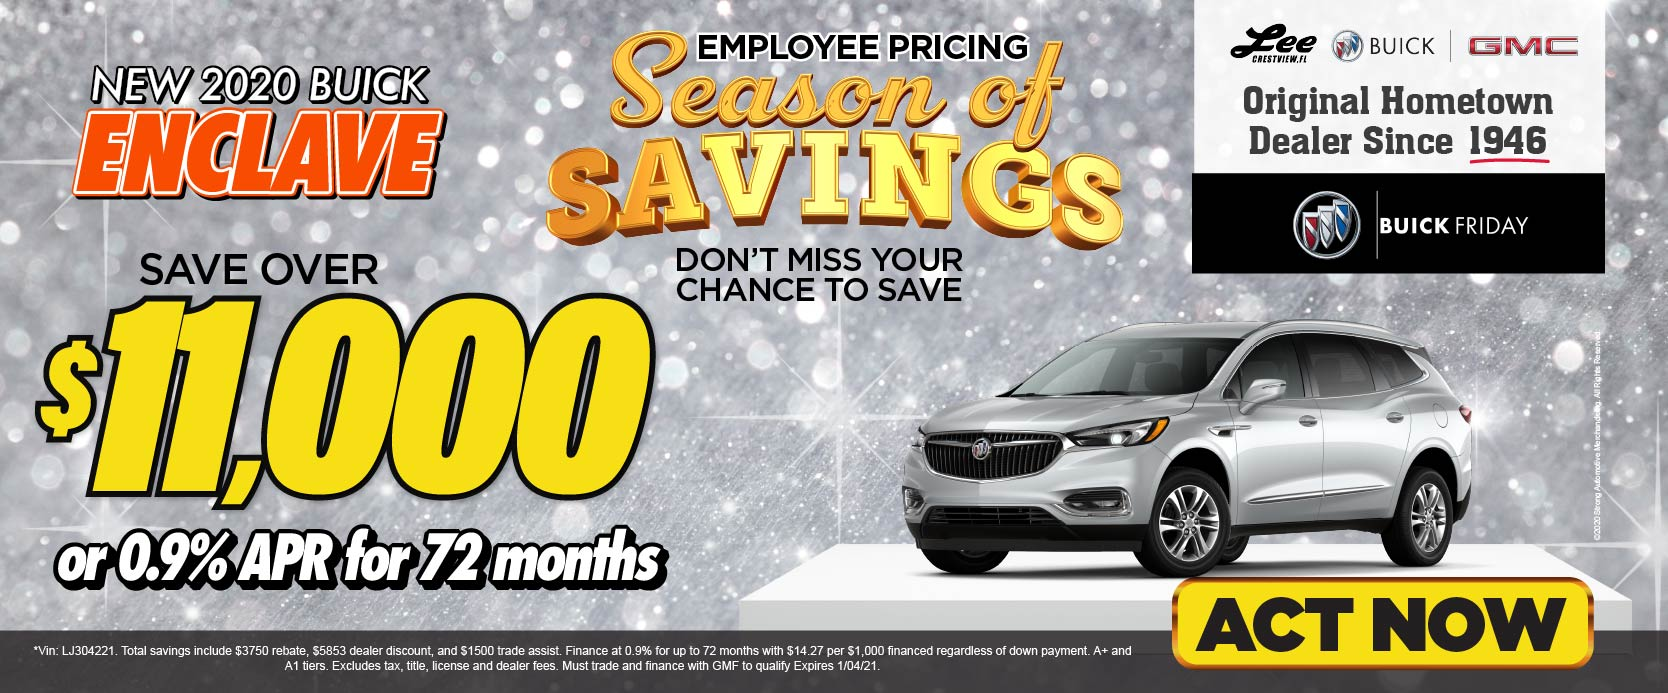 2020 Buick Envision save over $9,000 Employee Pricing For Everyone | Act Now